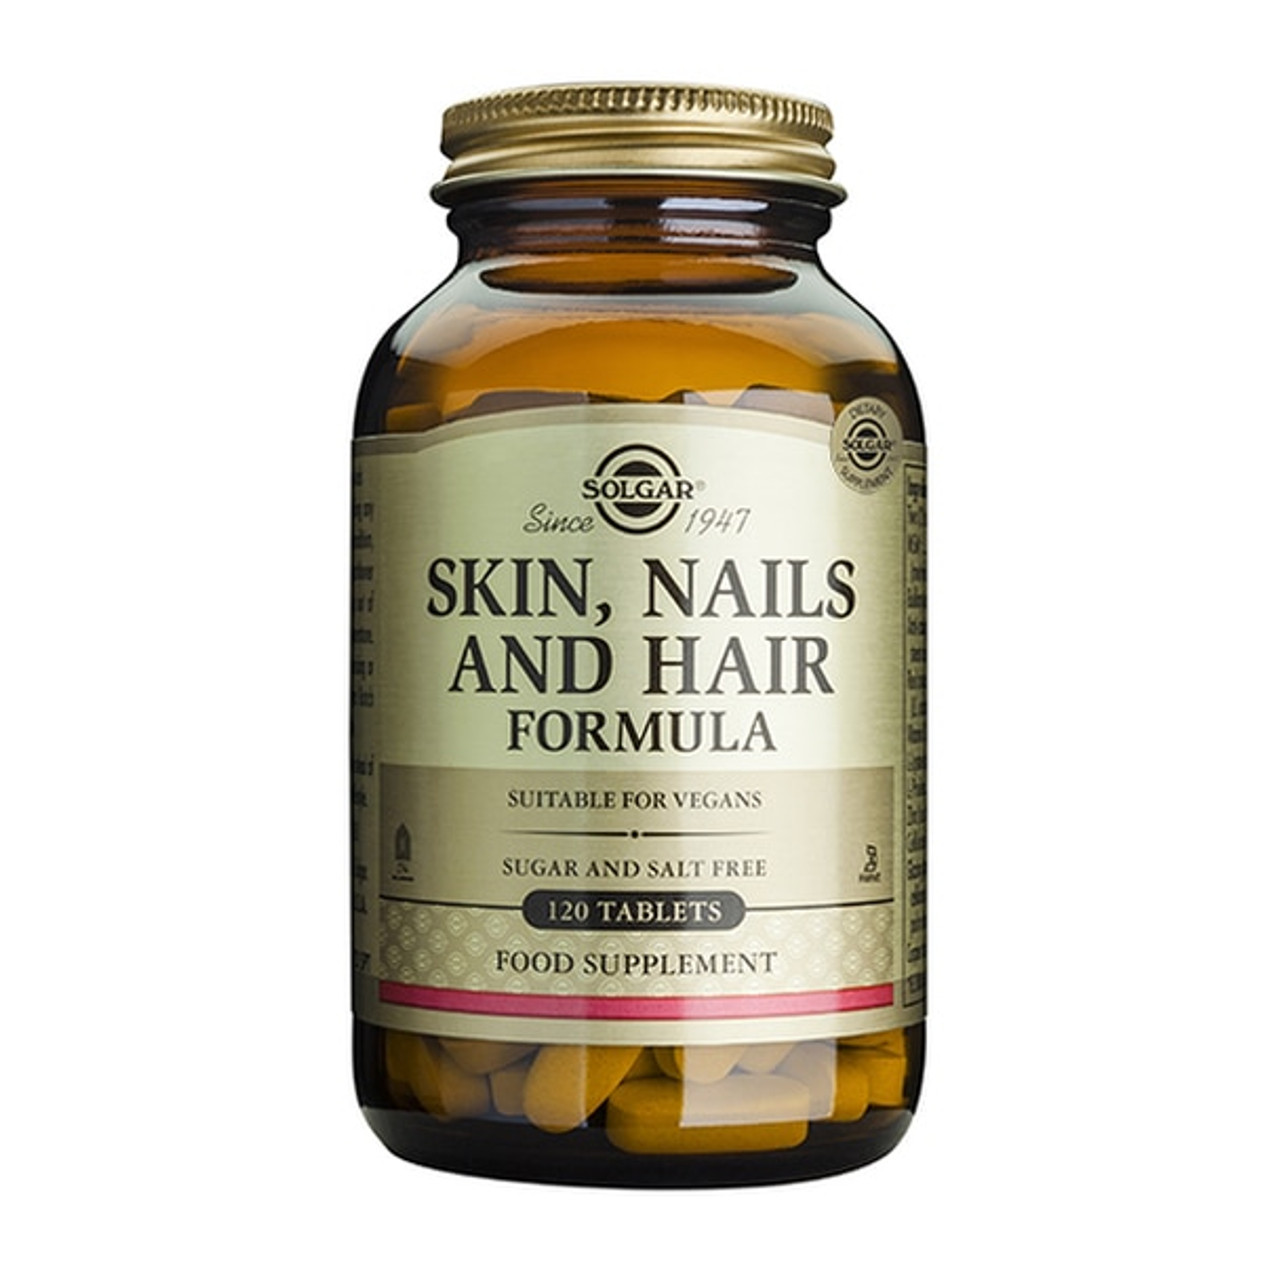 Solgar Skin, Nails & Hair 120 Tablets NZ